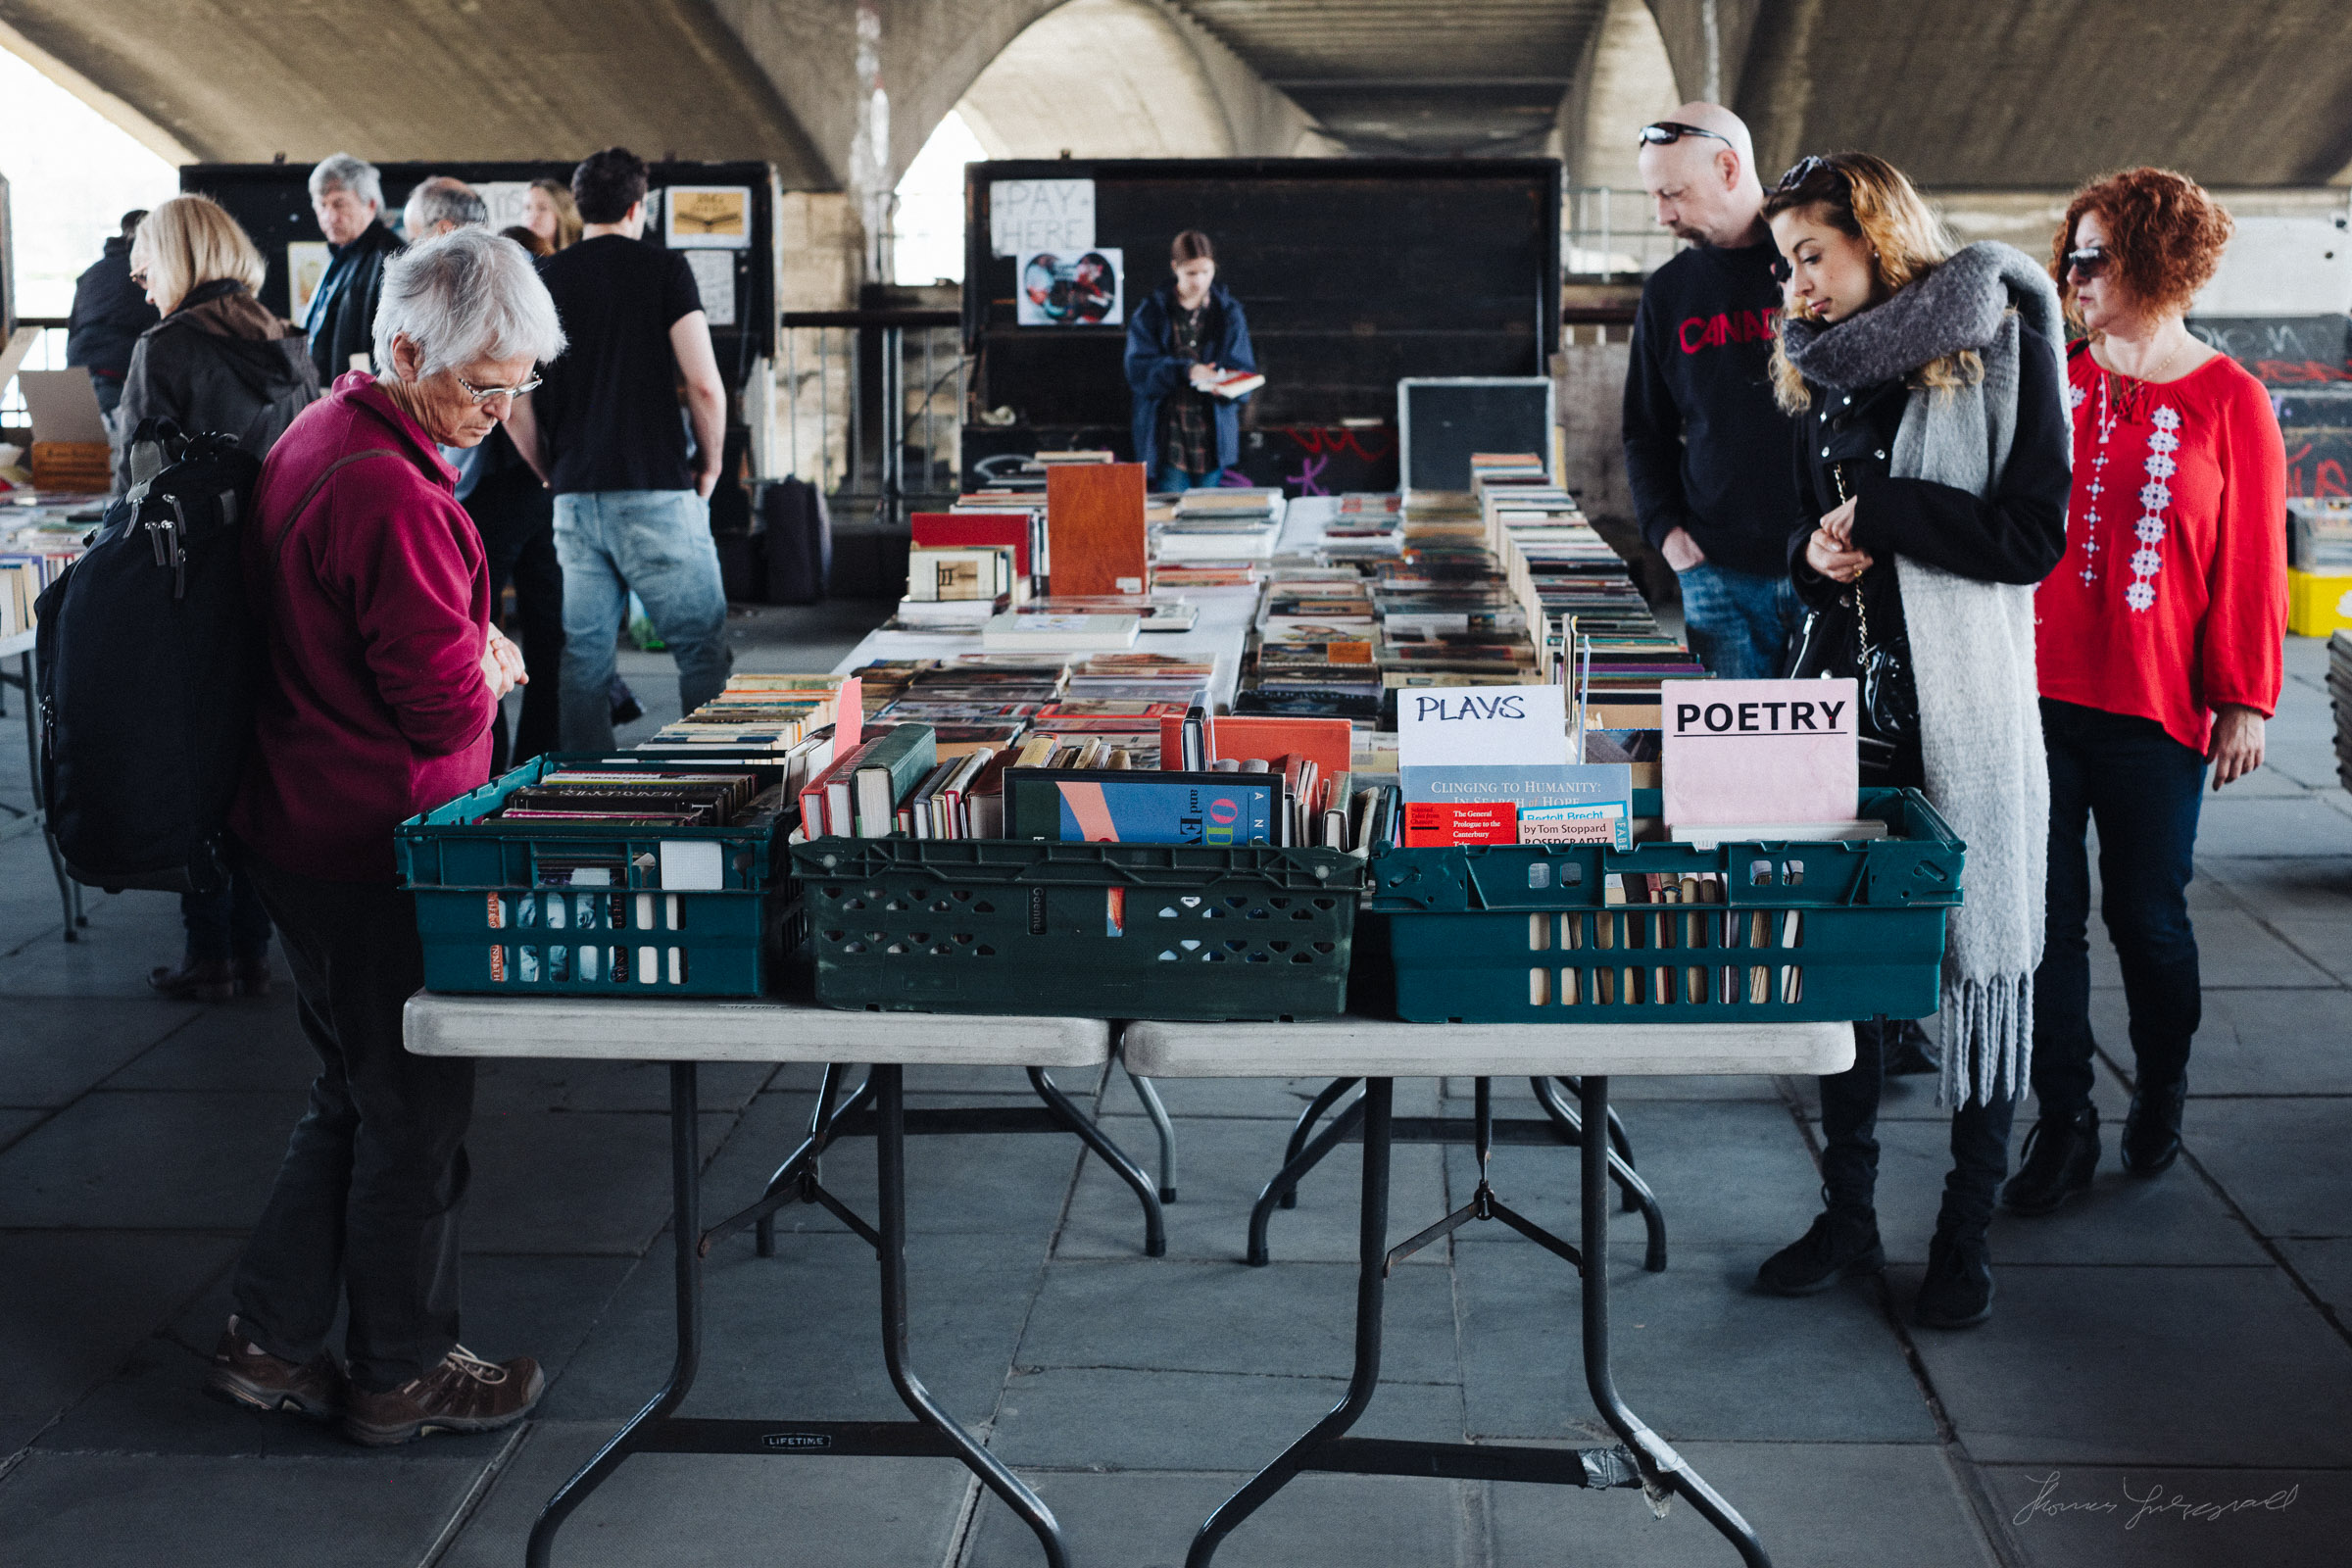 People browsing books in London's Southbank